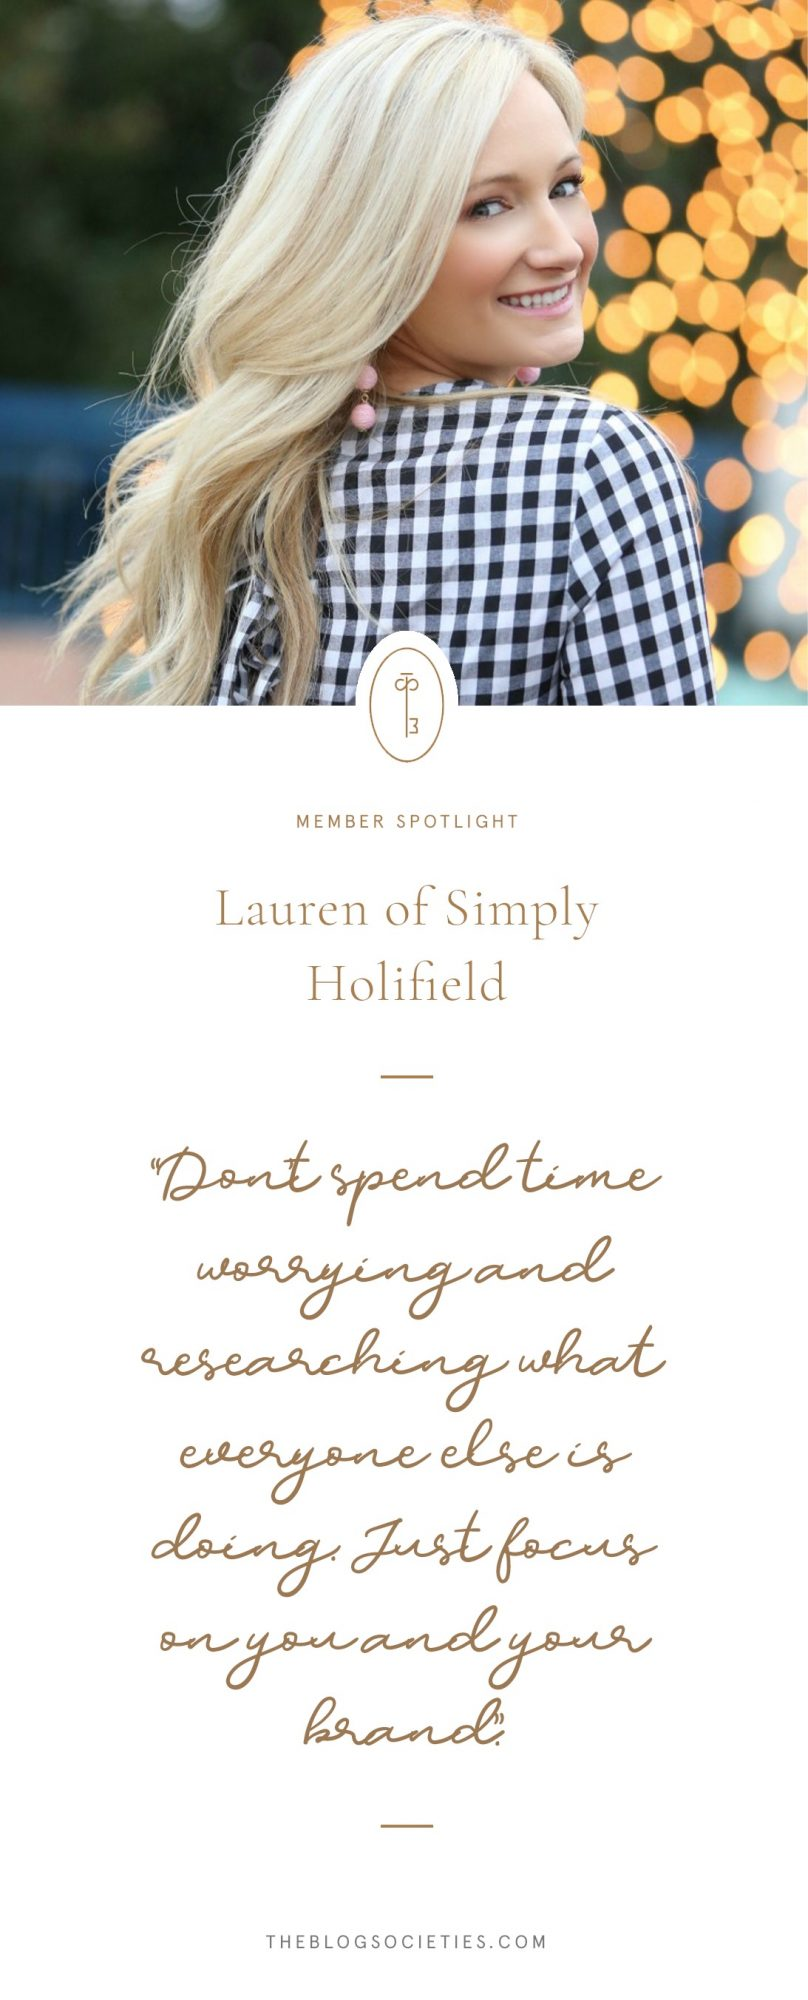 Lauren of Simply Holifield